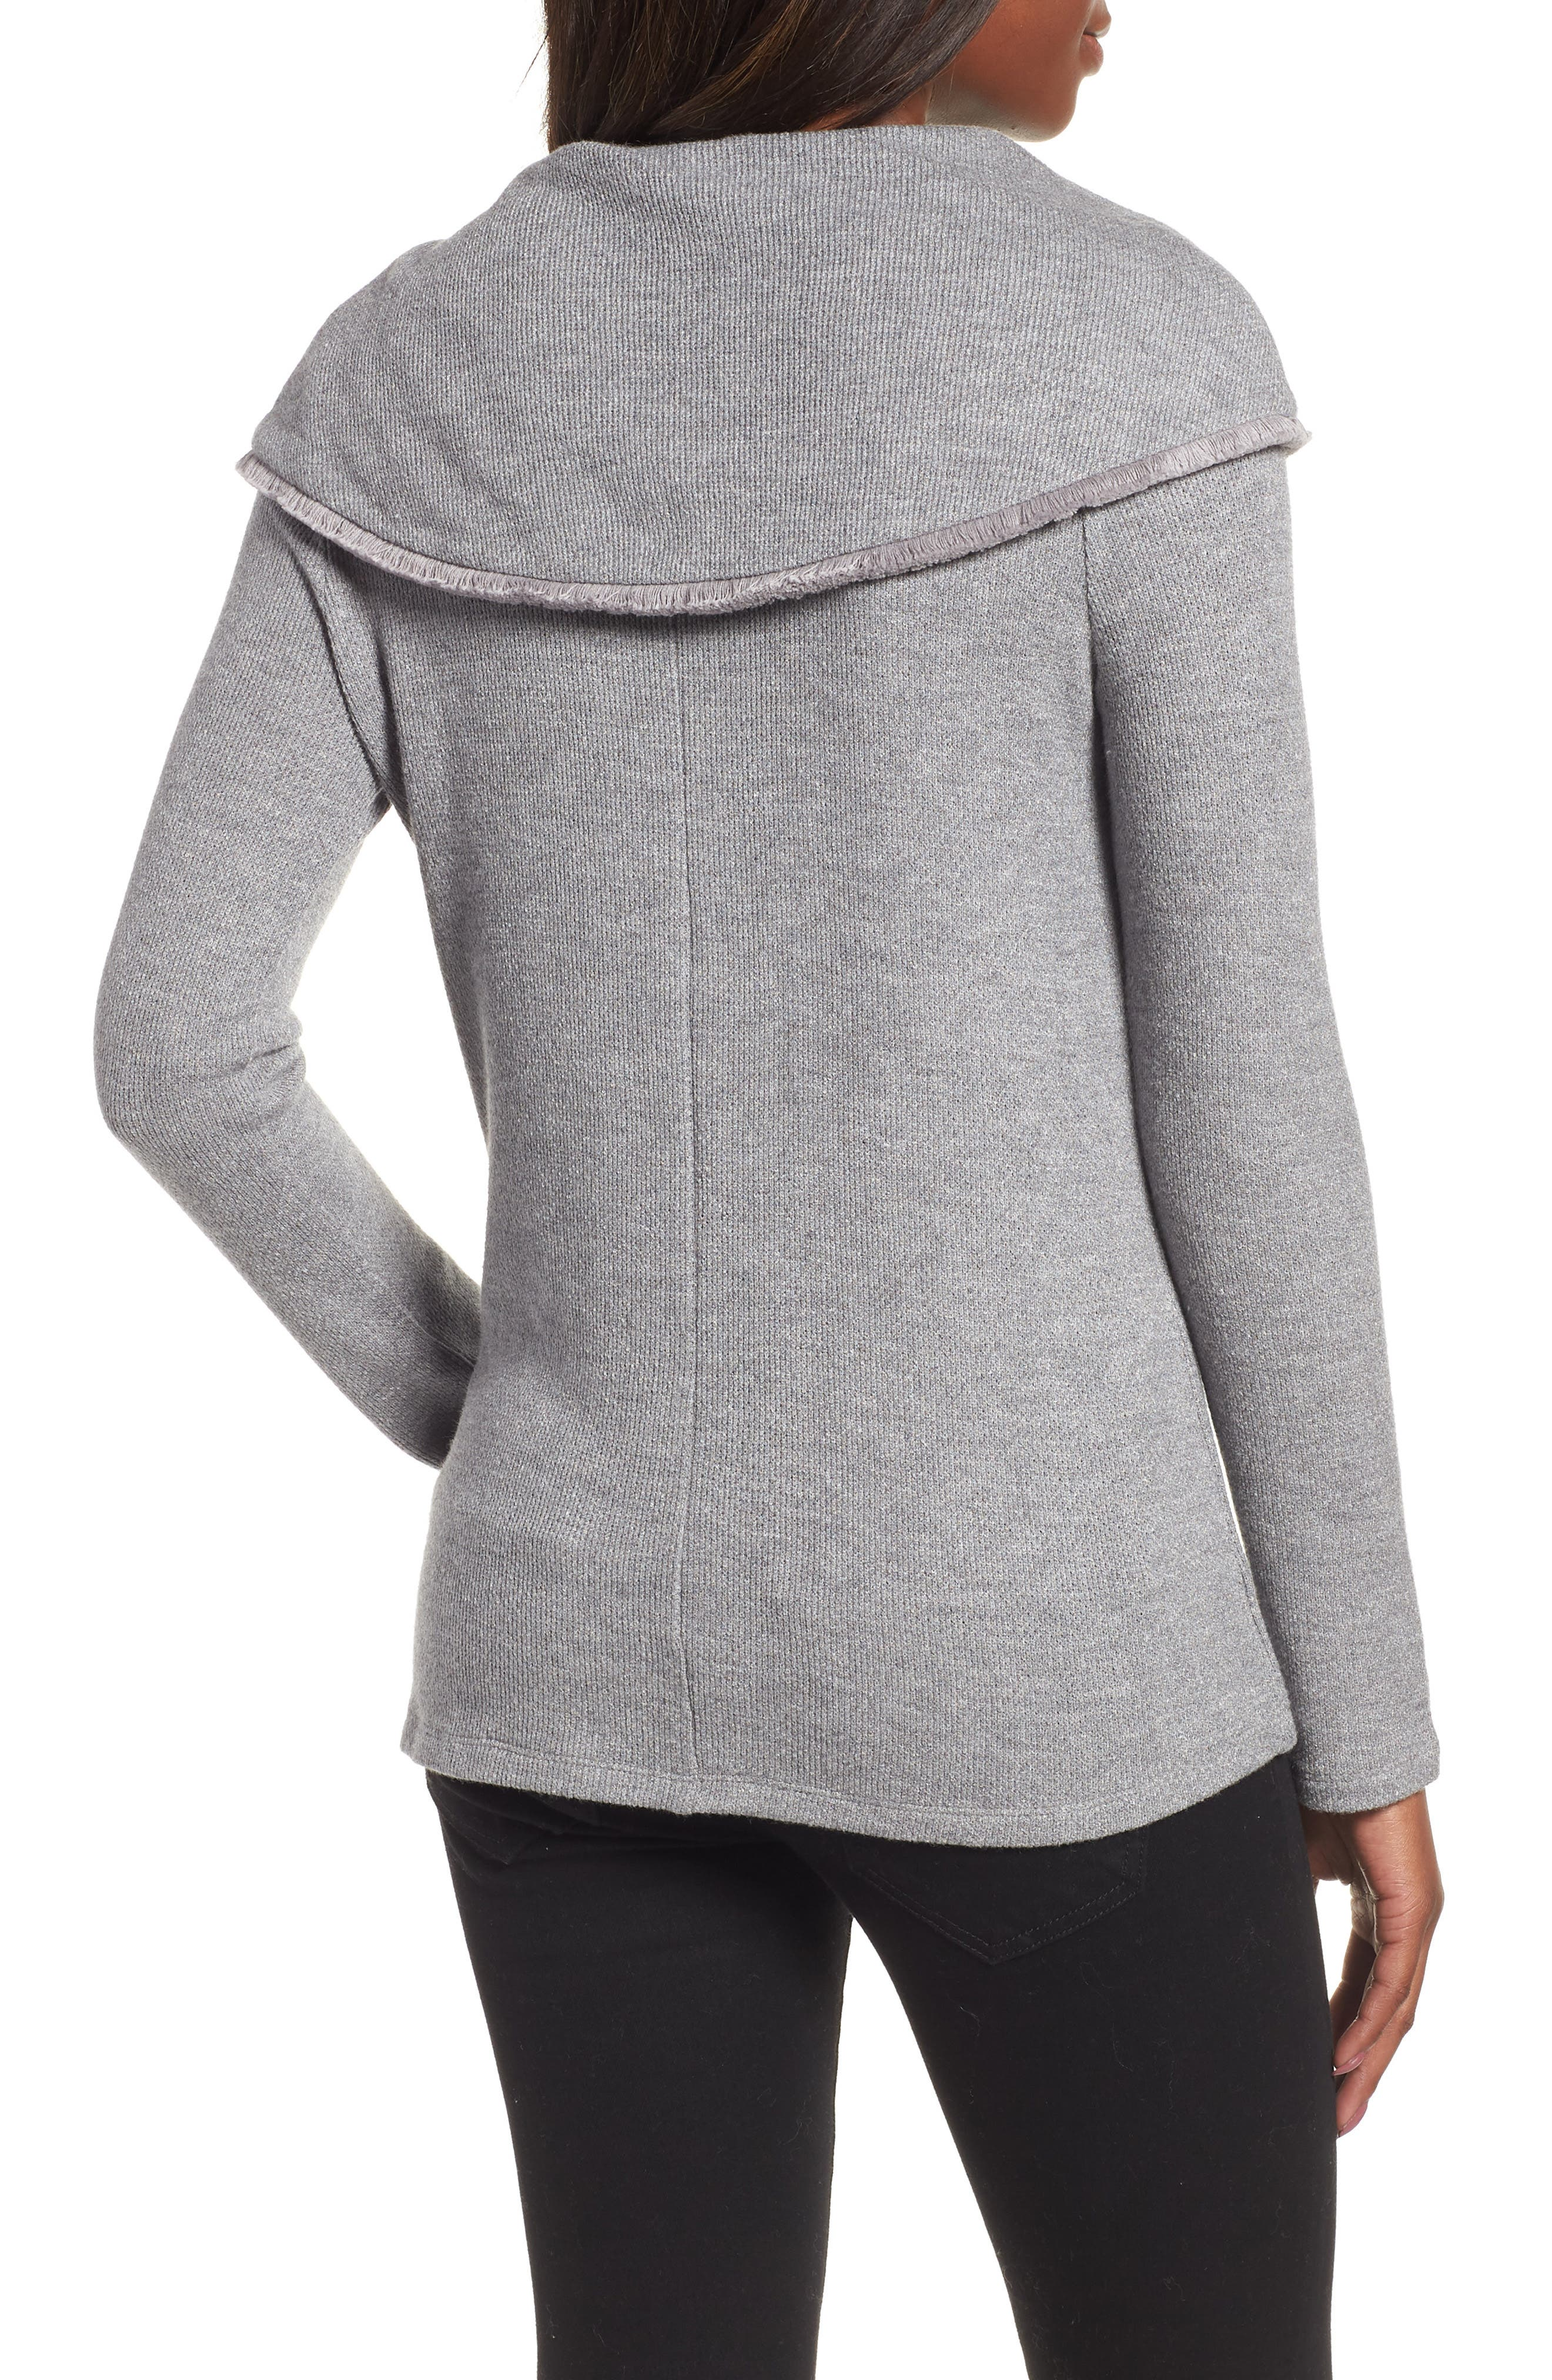 Long Sleeve Cowl Neck Sweater,                             Alternate thumbnail 2, color,                             LUXE GREY